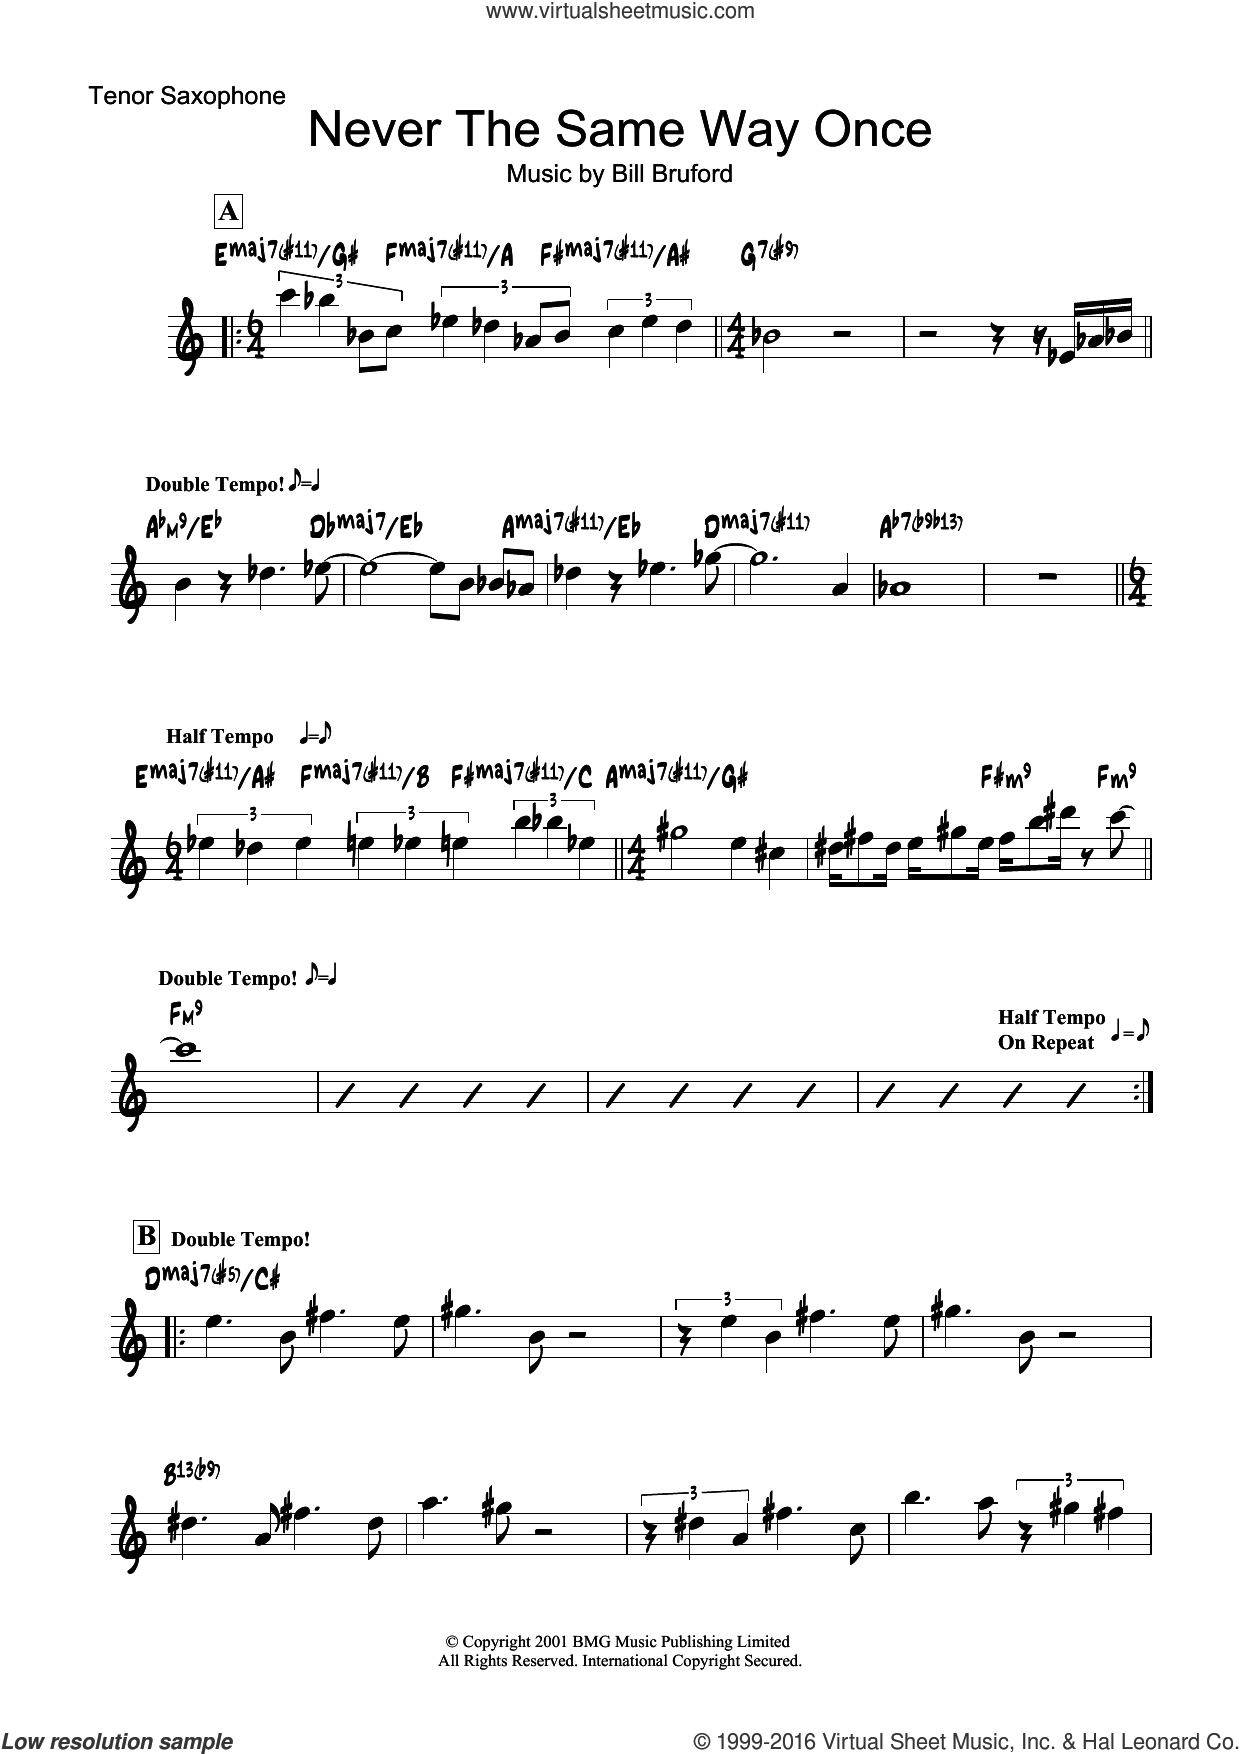 Never The Same Way Once sheet music for tenor saxophone solo by Bill Bruford. Score Image Preview.